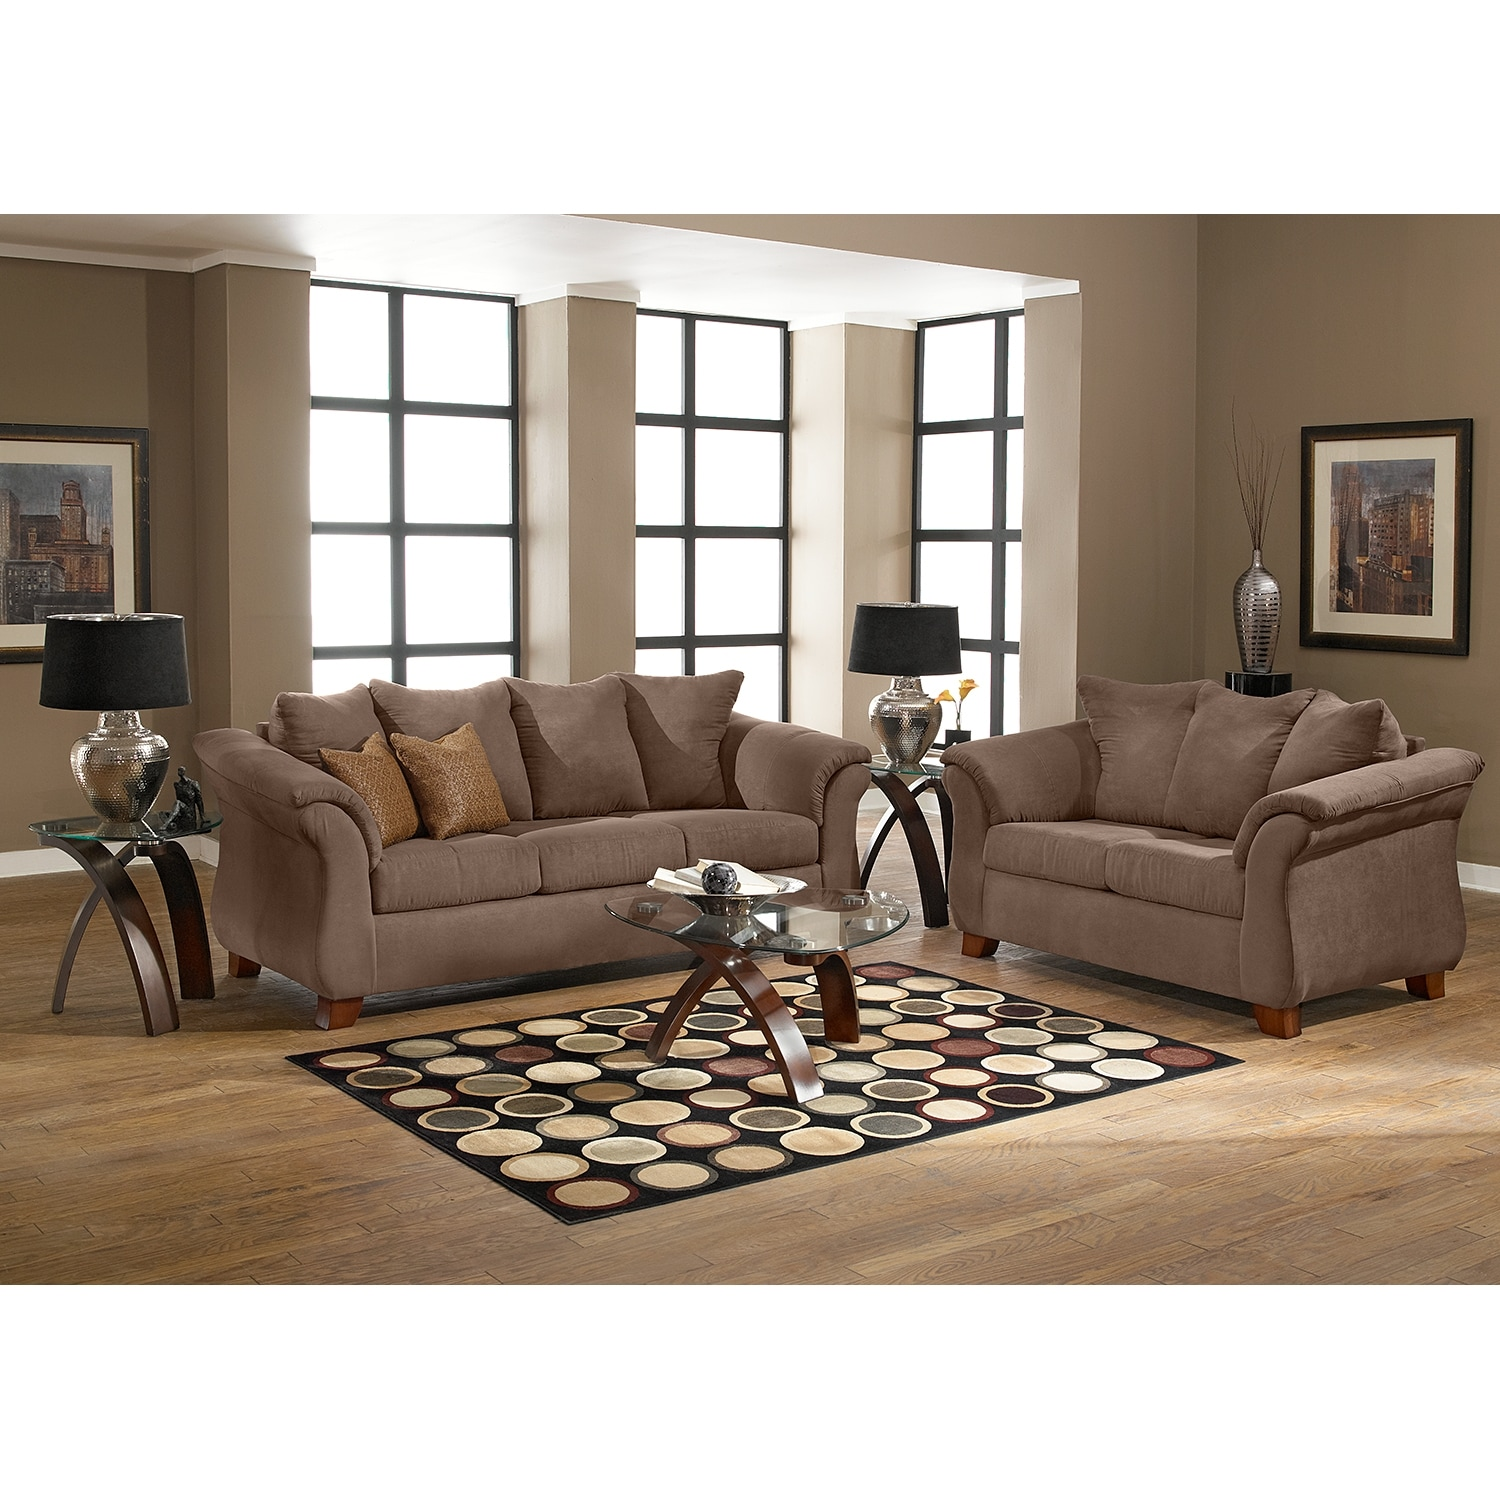 taupe couch living room adrian sofa taupe value city furniture 15370